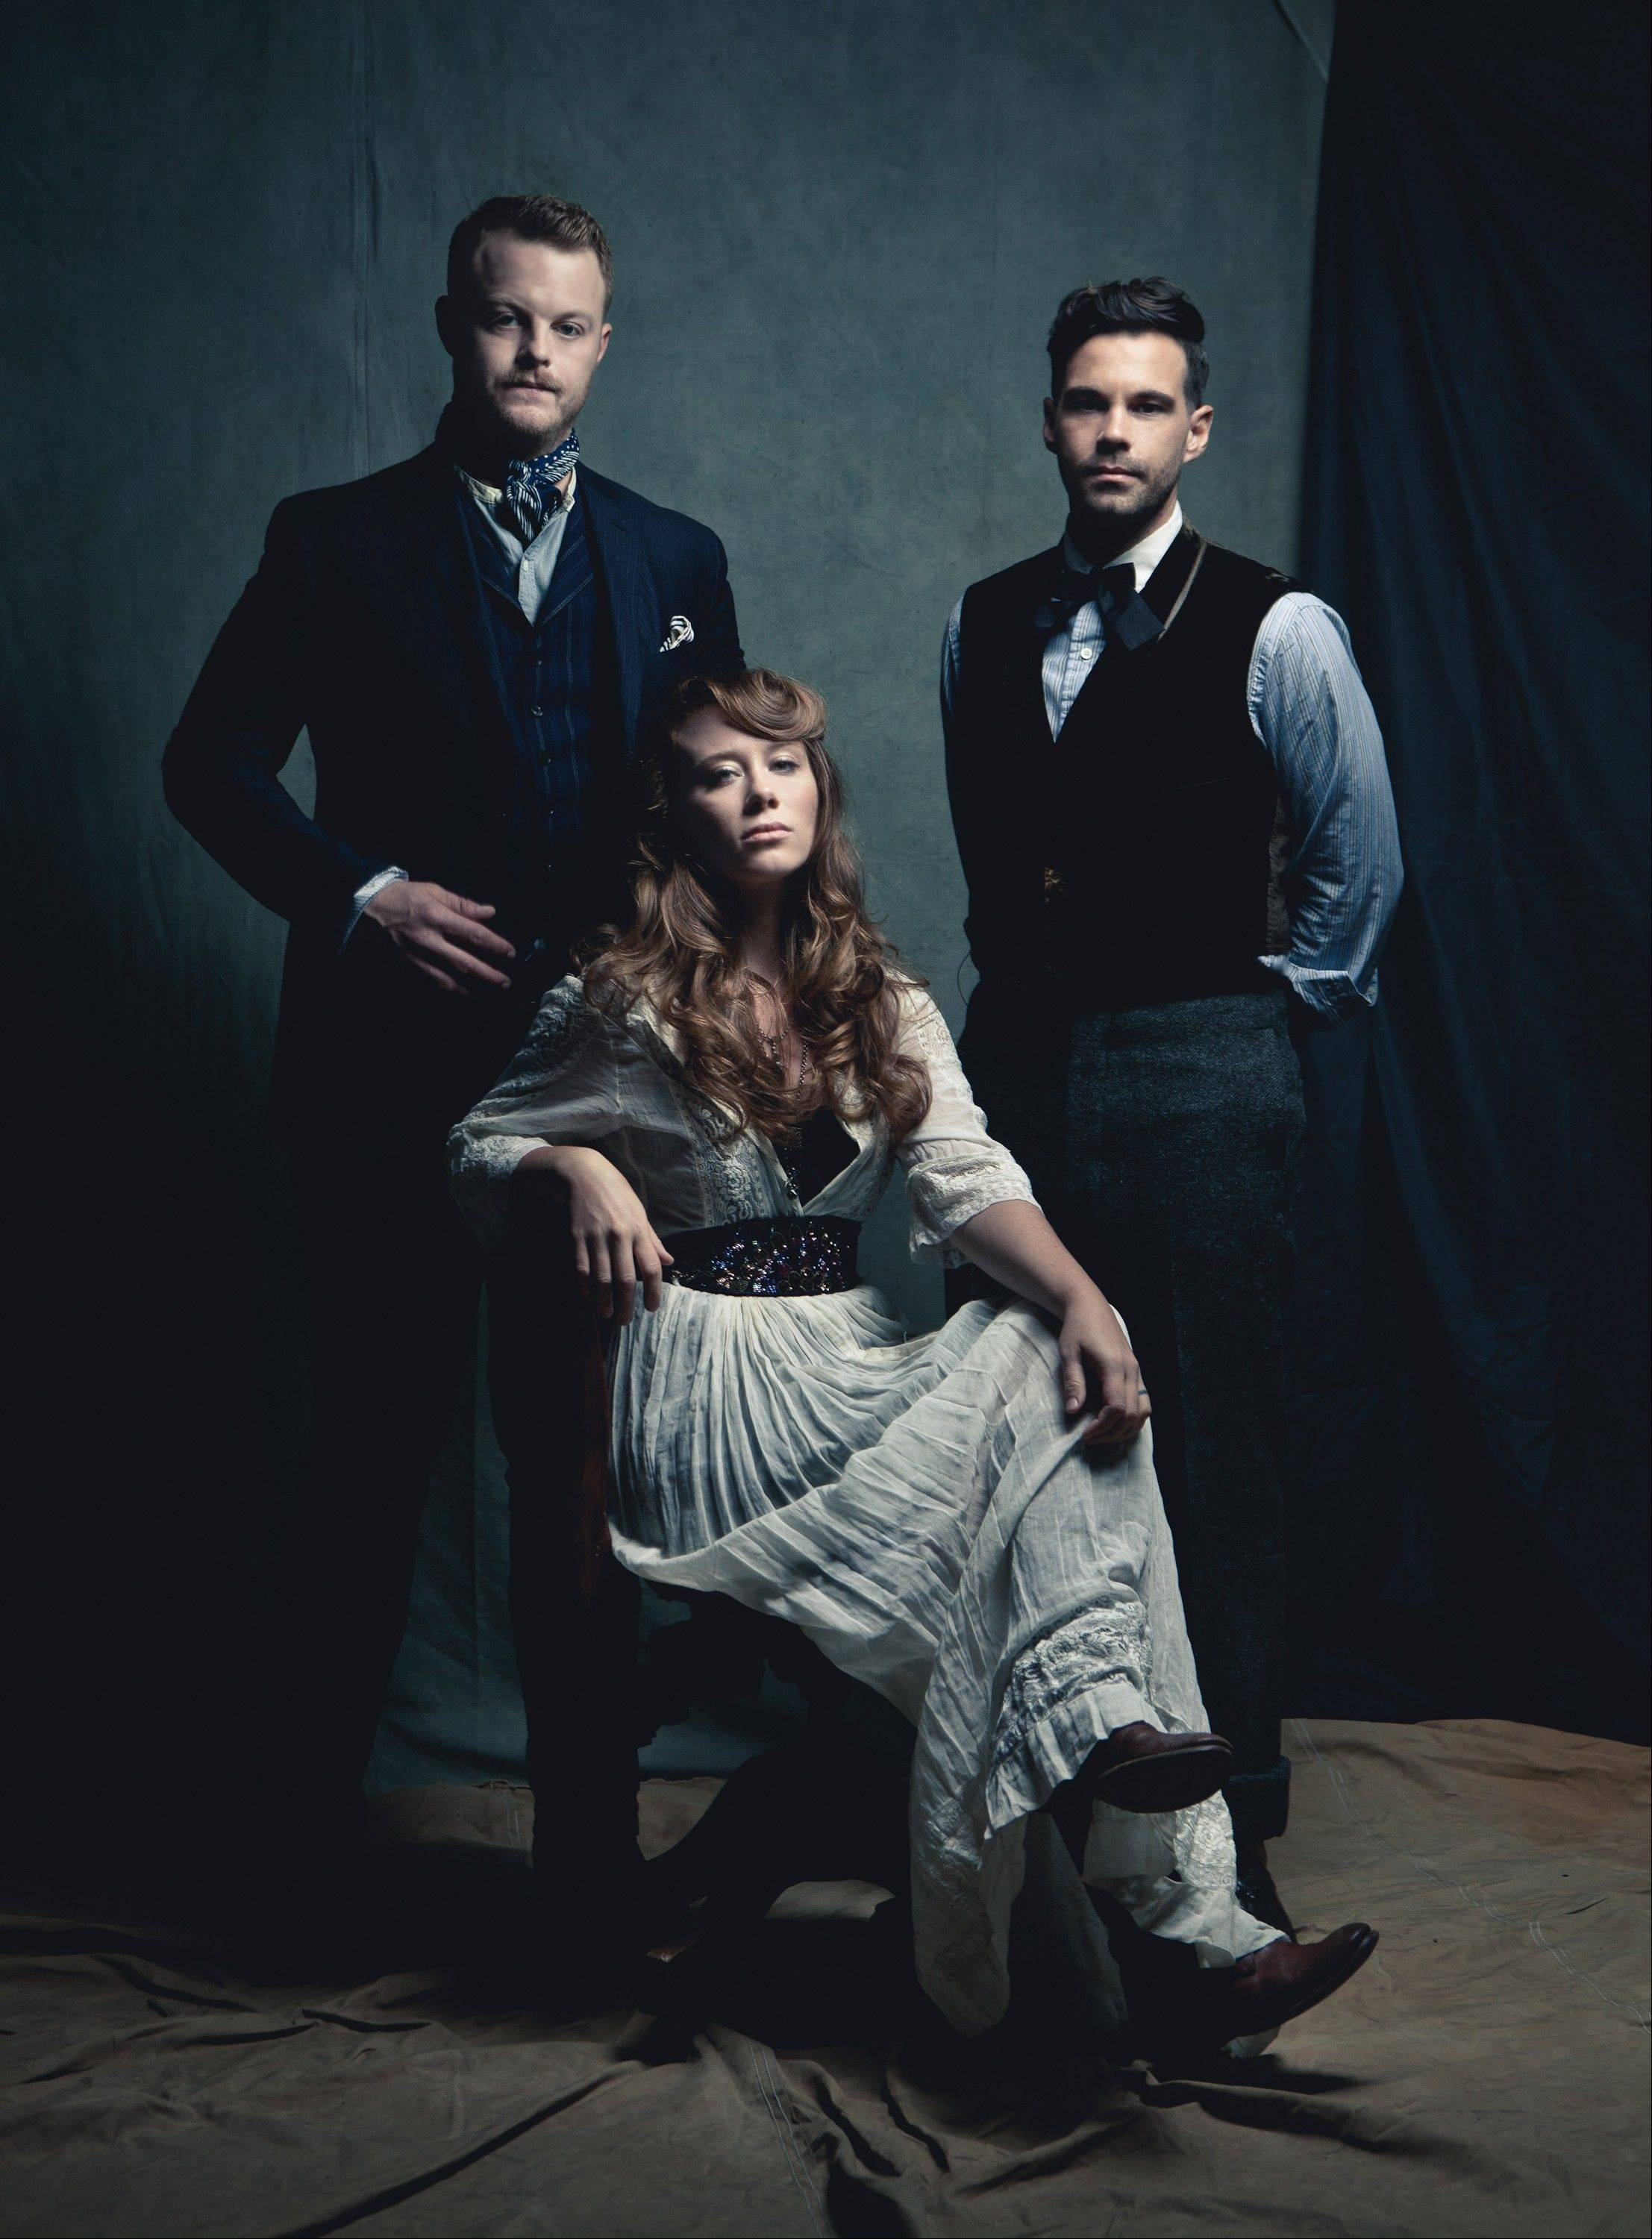 The Lone Bellow: from left, Brian Elmquist, Kanene Pipkin, seated, and Zach Williams